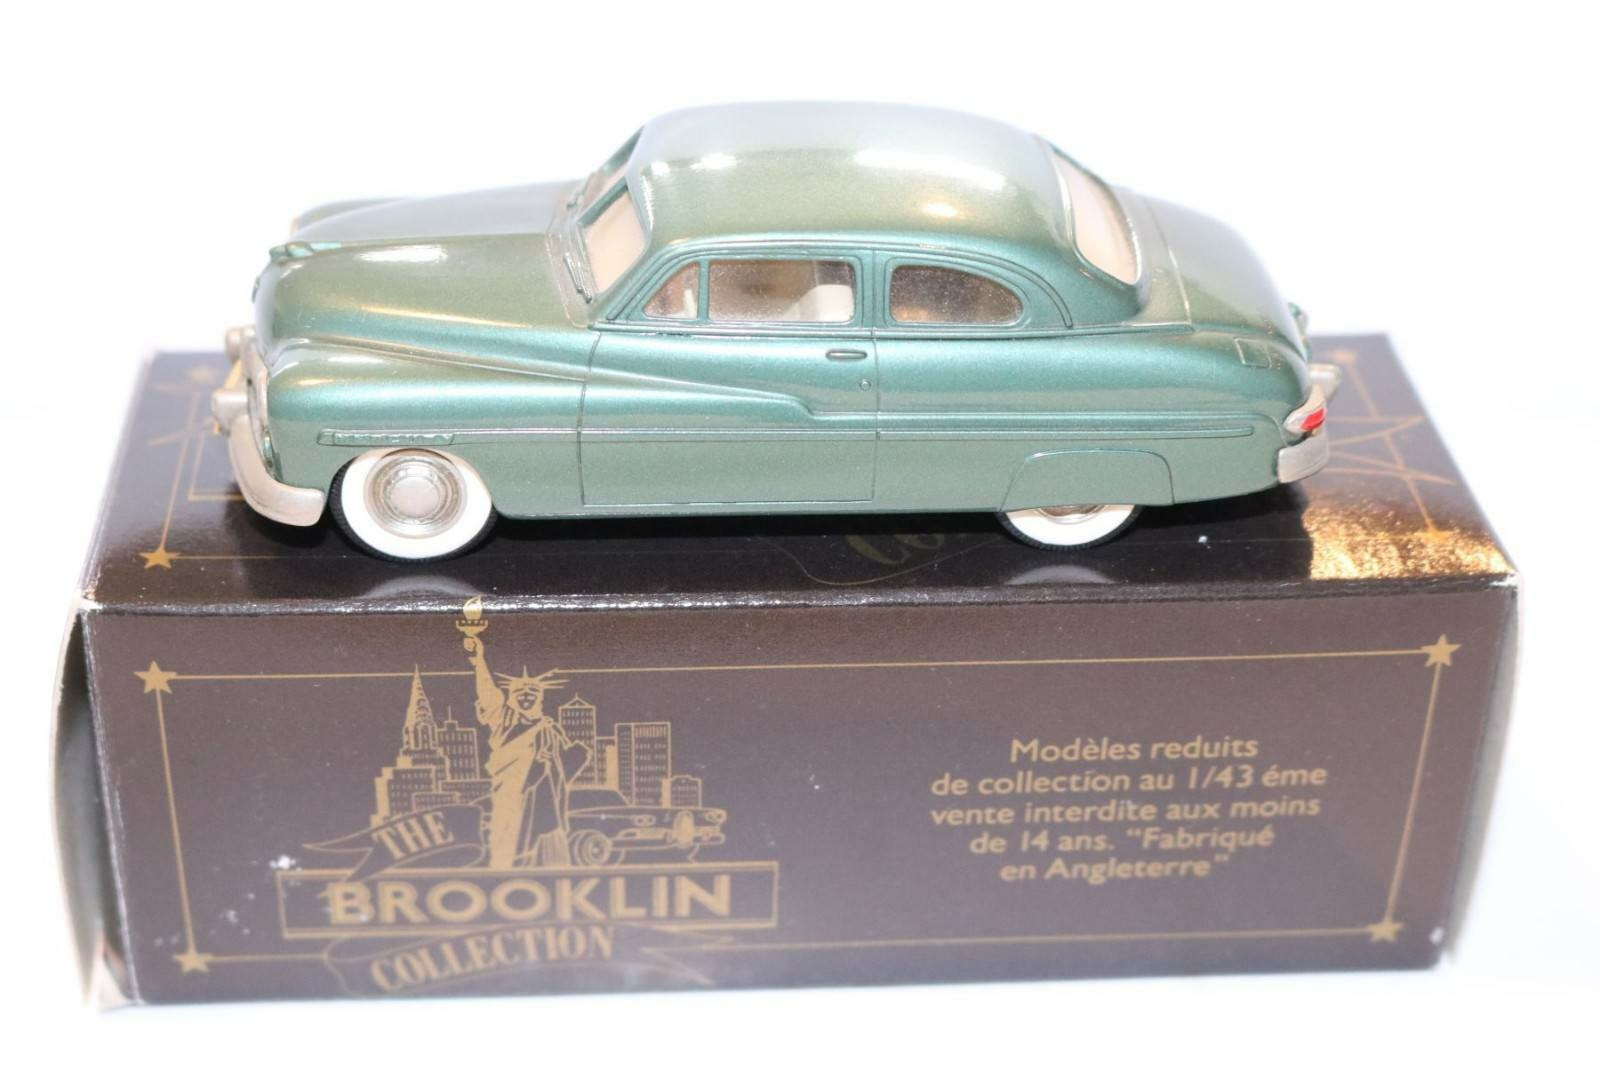 Brooklin BRK 15 Mercury 2 door coupe 1949 1 43 perfect mint in box